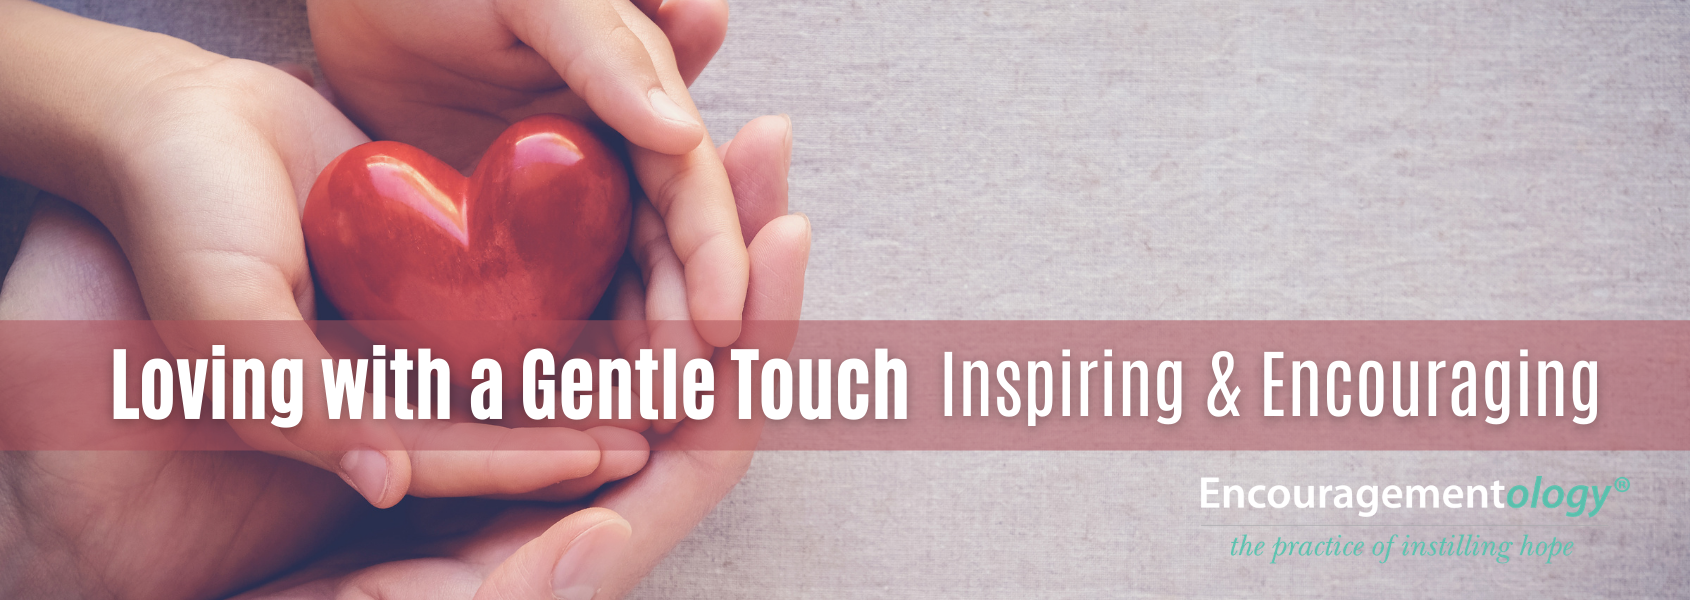 Loving with a gentle touch